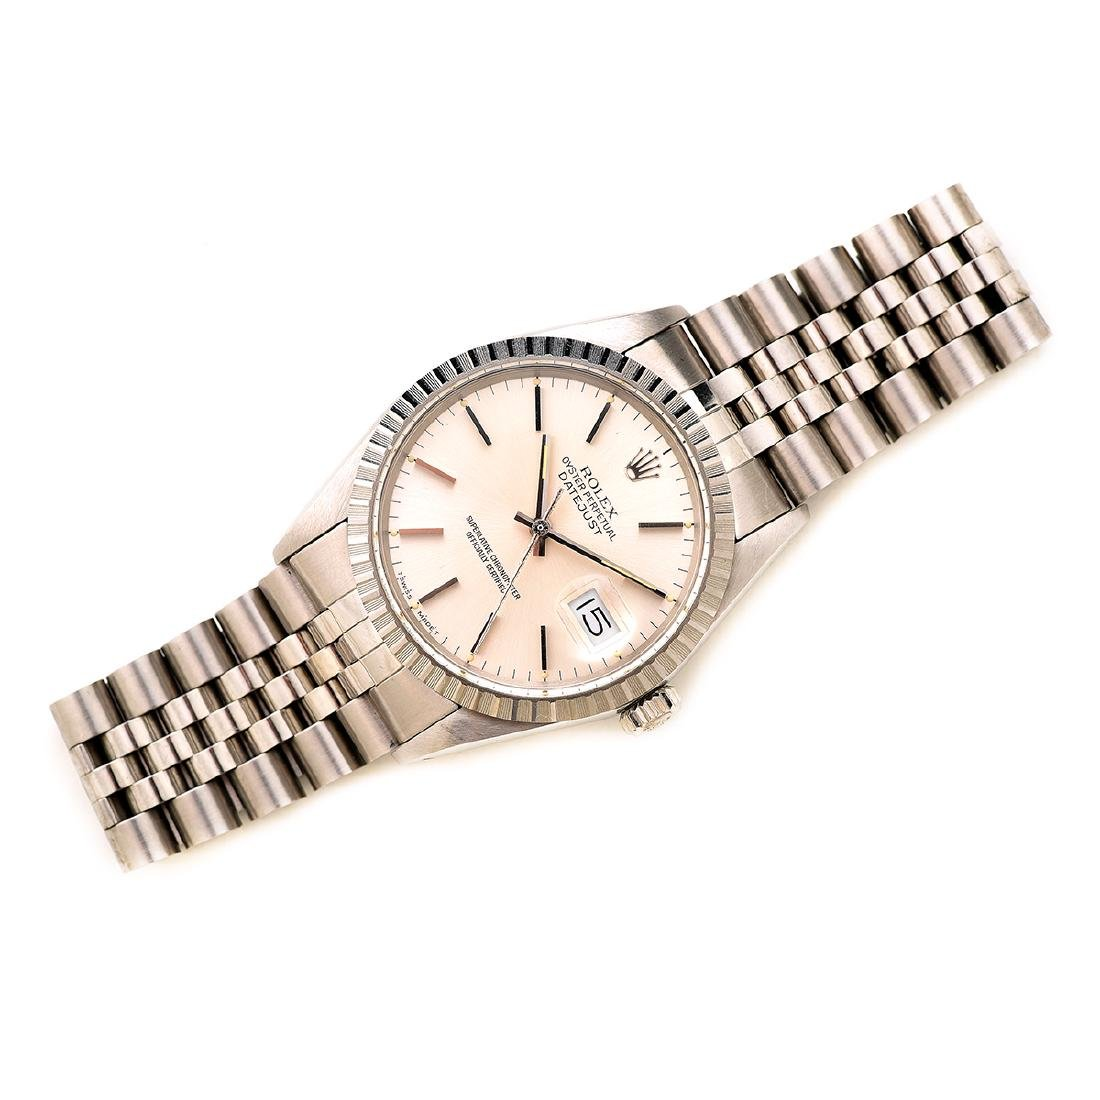 Rolex Oyster Perpetual Datejust Stainless Steel